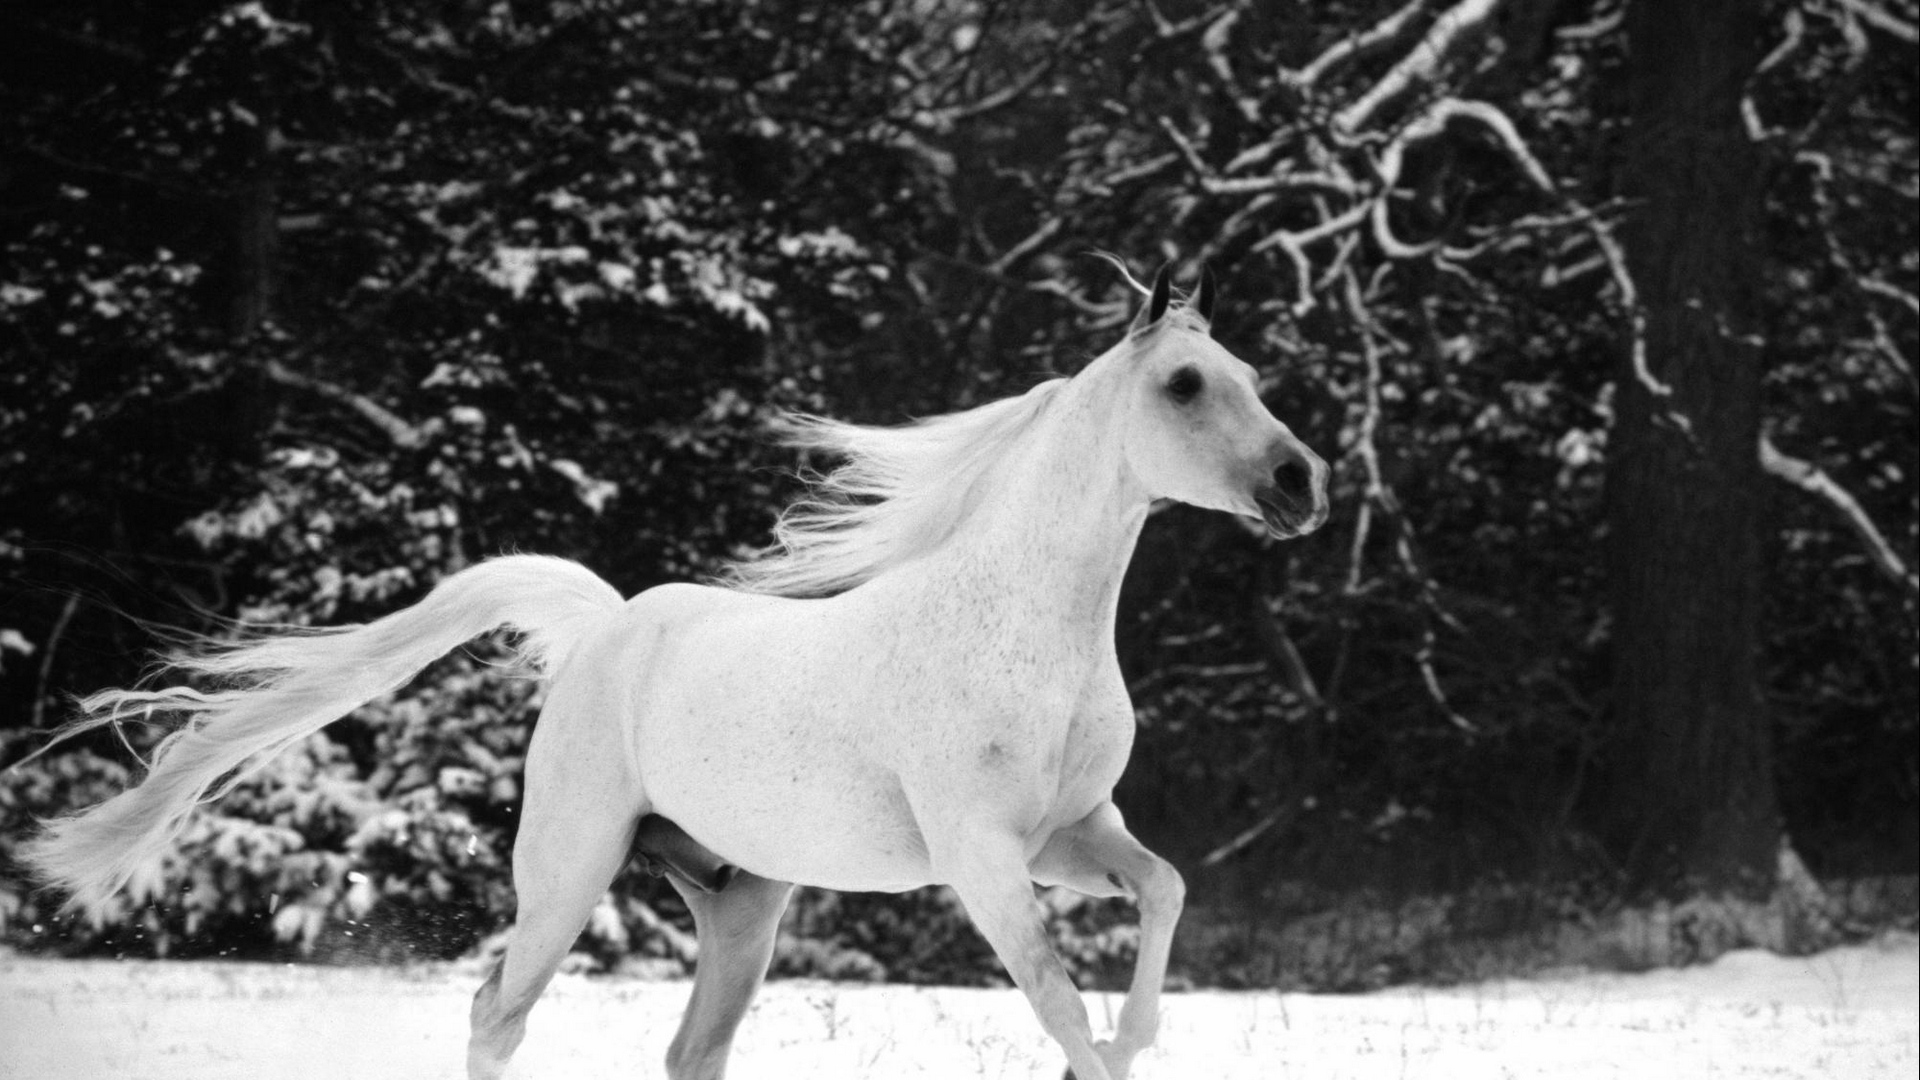 Wallpaper Horse Jumping Mane Beautiful Black White Most Beautiful White Horse In The World 1920x1080 Wallpaper Teahub Io